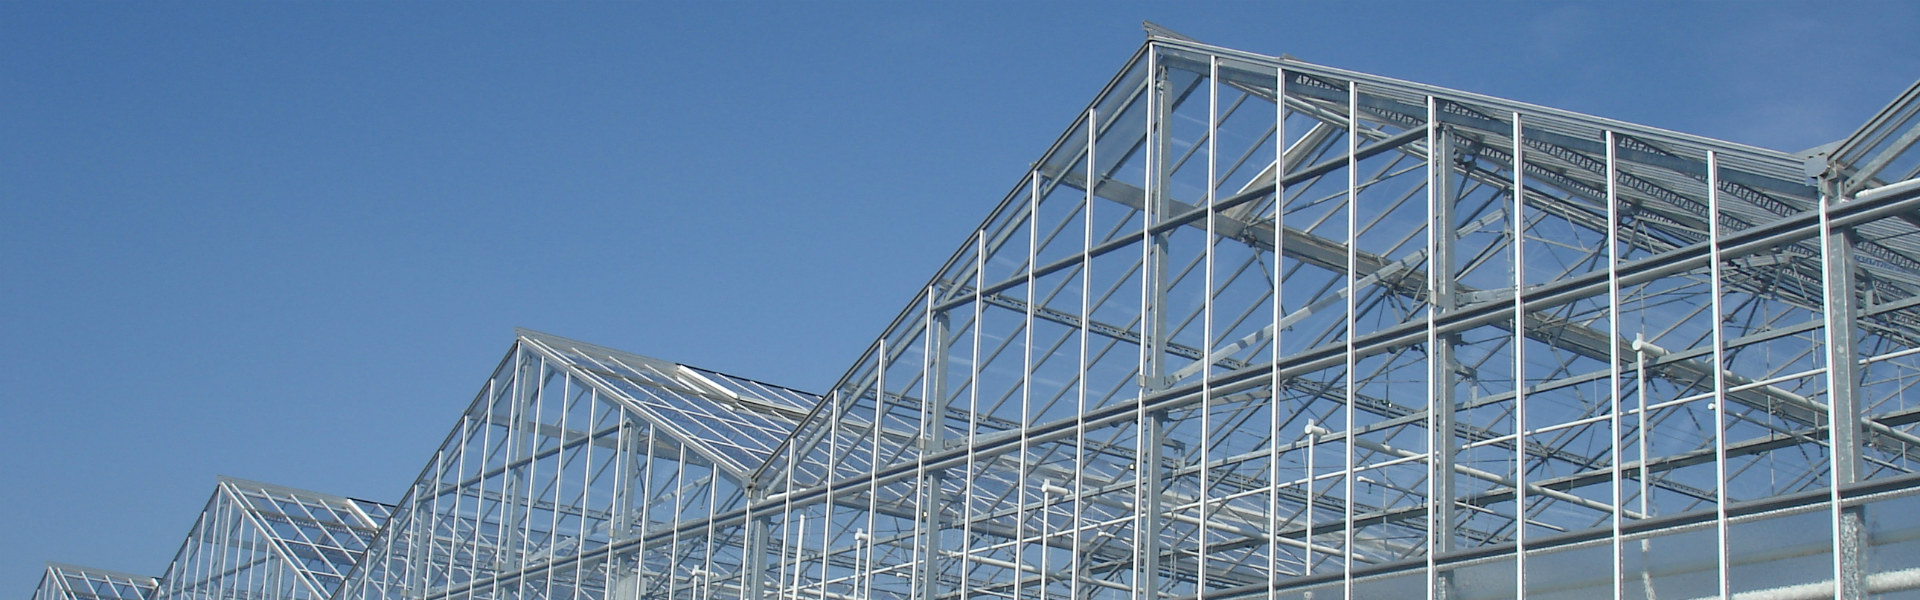 Image of Alcomij's widespan greenhouse roof system